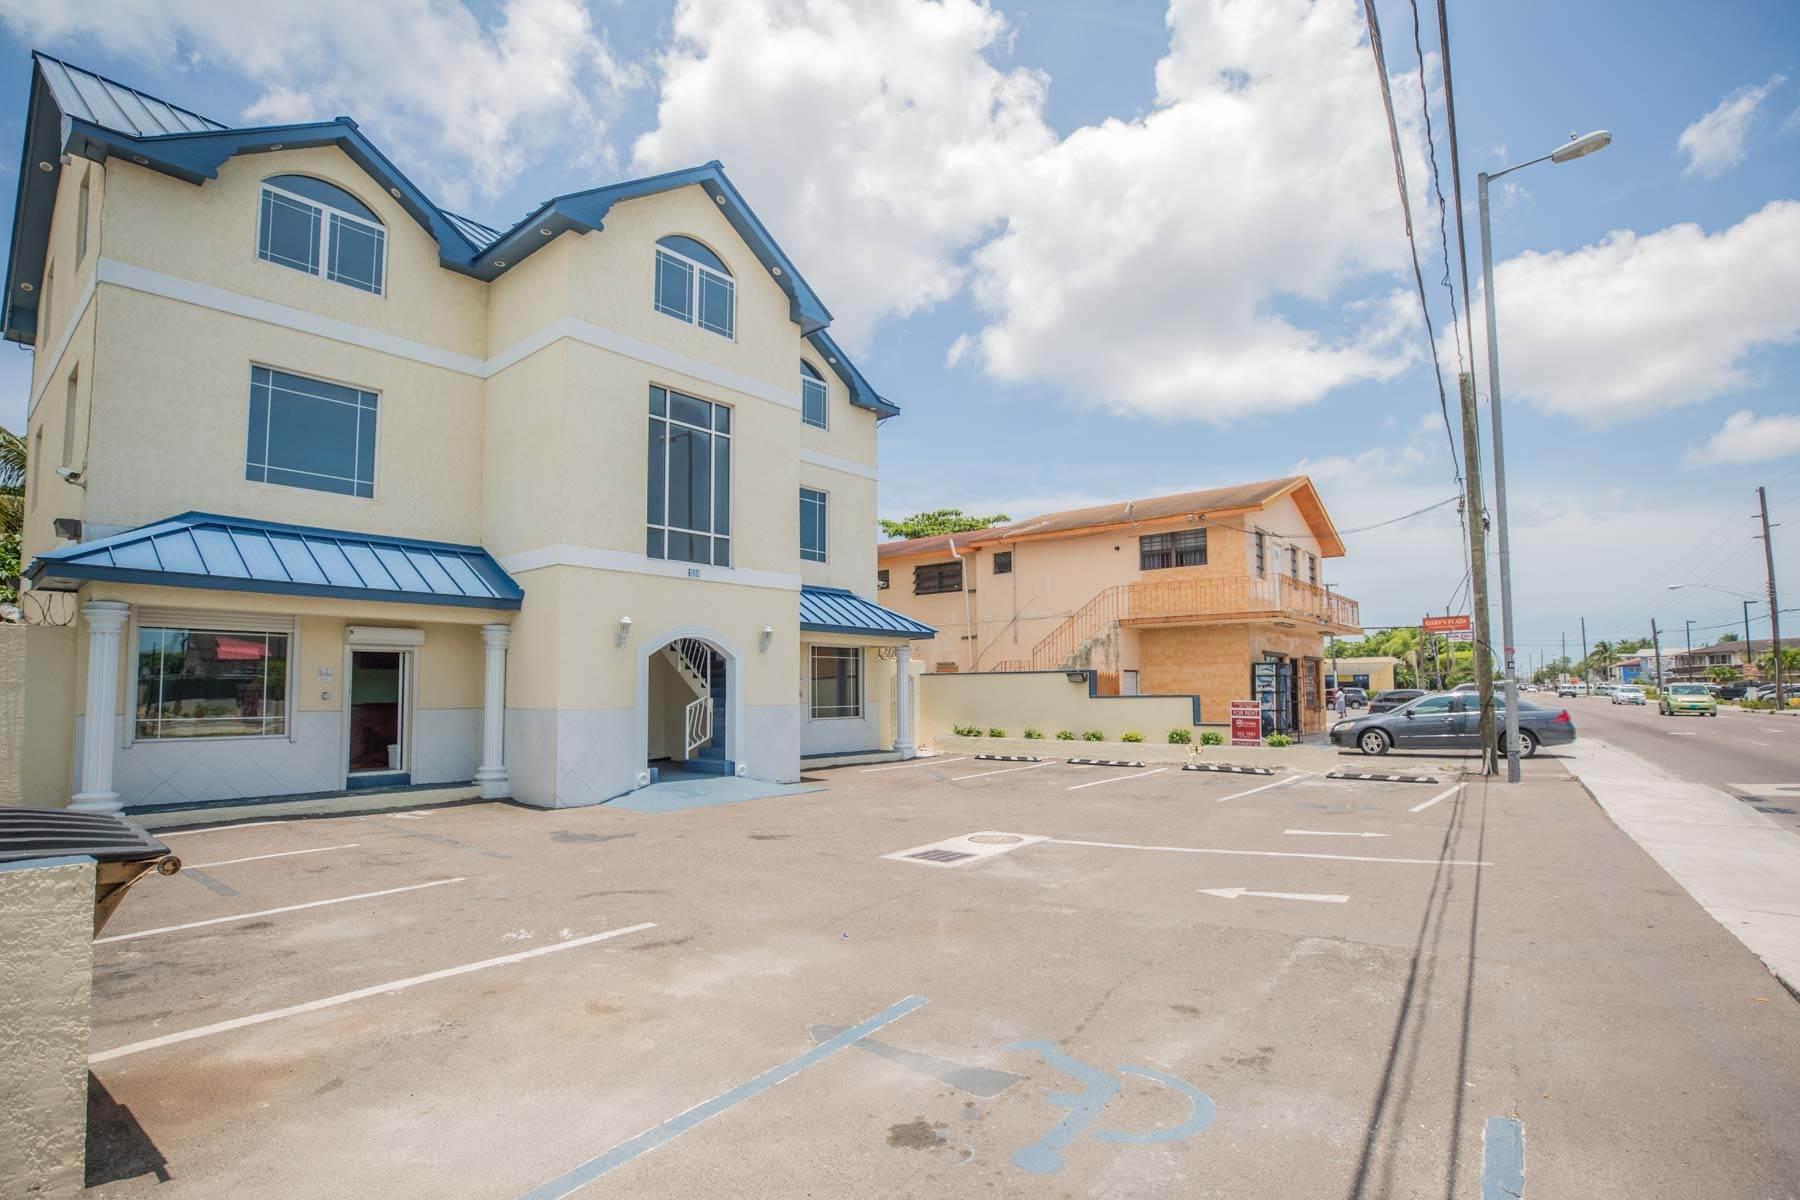 9. Commercial for Rent at Unique Discovery Plaza Upper Floor Office Space - MLS 33337 Nassau And Paradise Island, Bahamas